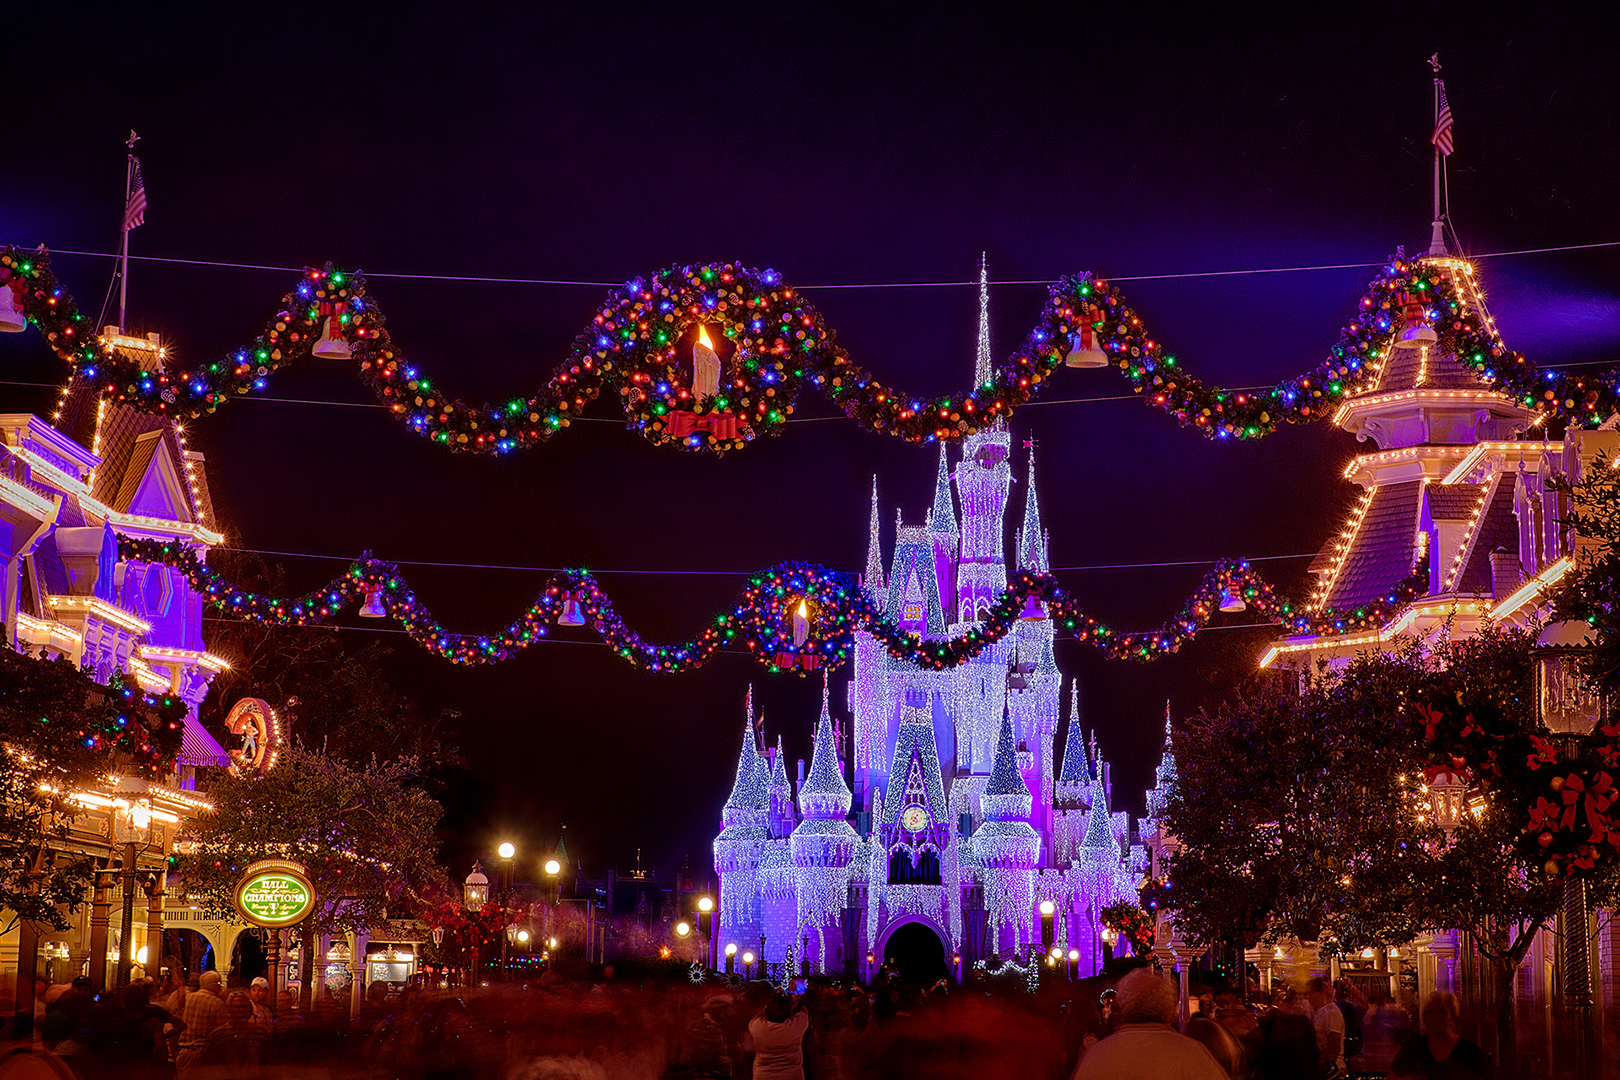 Disney Photography, Disney World Photography, Disneyland Photography, Disney Photos, Disney Pictures, Walt Disney World, The Magic Kingdom, Walt Disney, Mickey Mouse, Orlando, Florida, Theme Park,  Christmas, Castle, Cindarella Castle